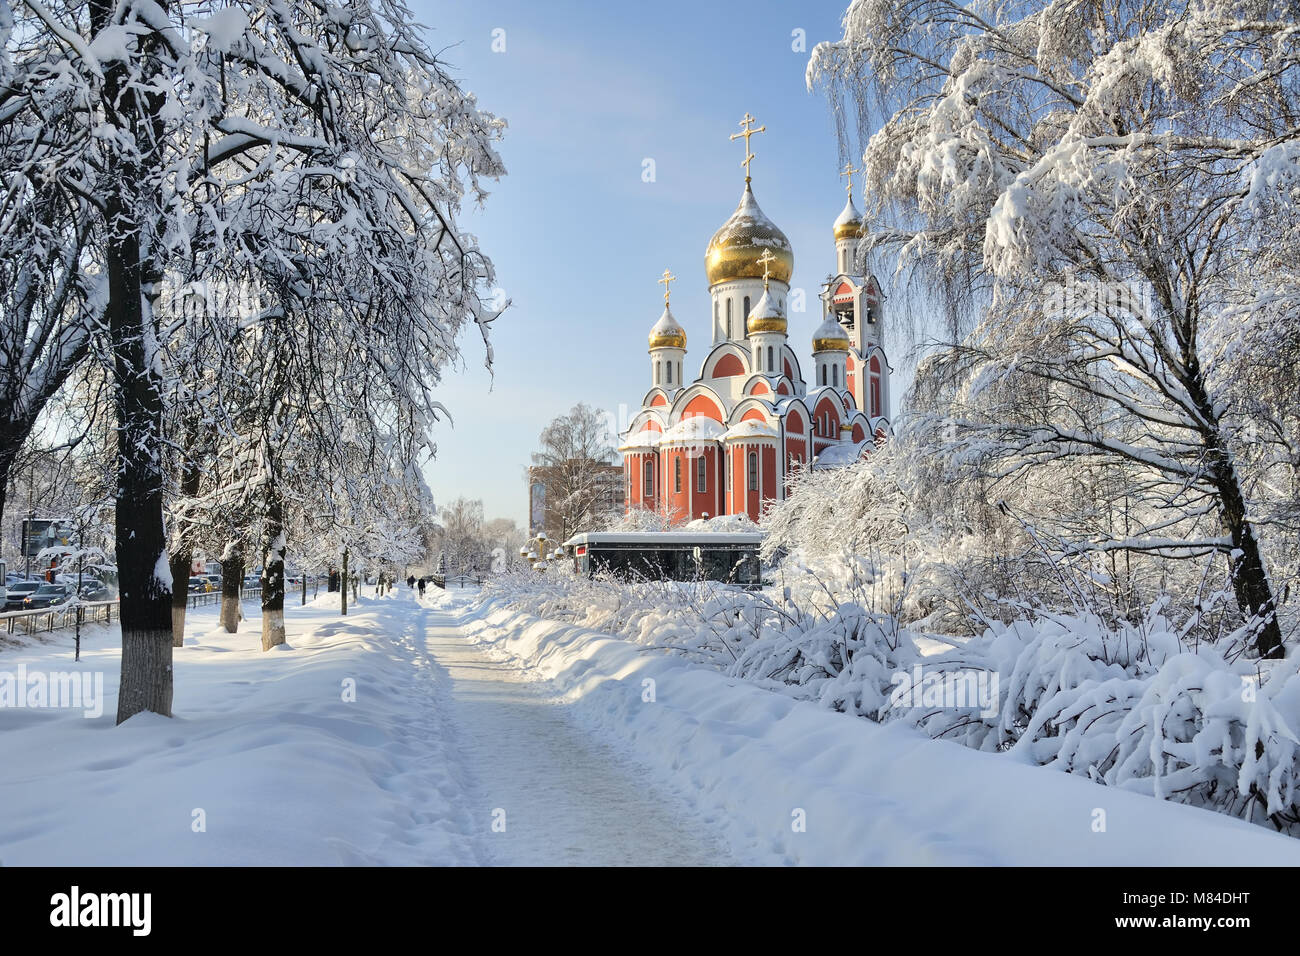 St. George Church in Odintsovo Framed by Trees Covered Snow - Stock Image